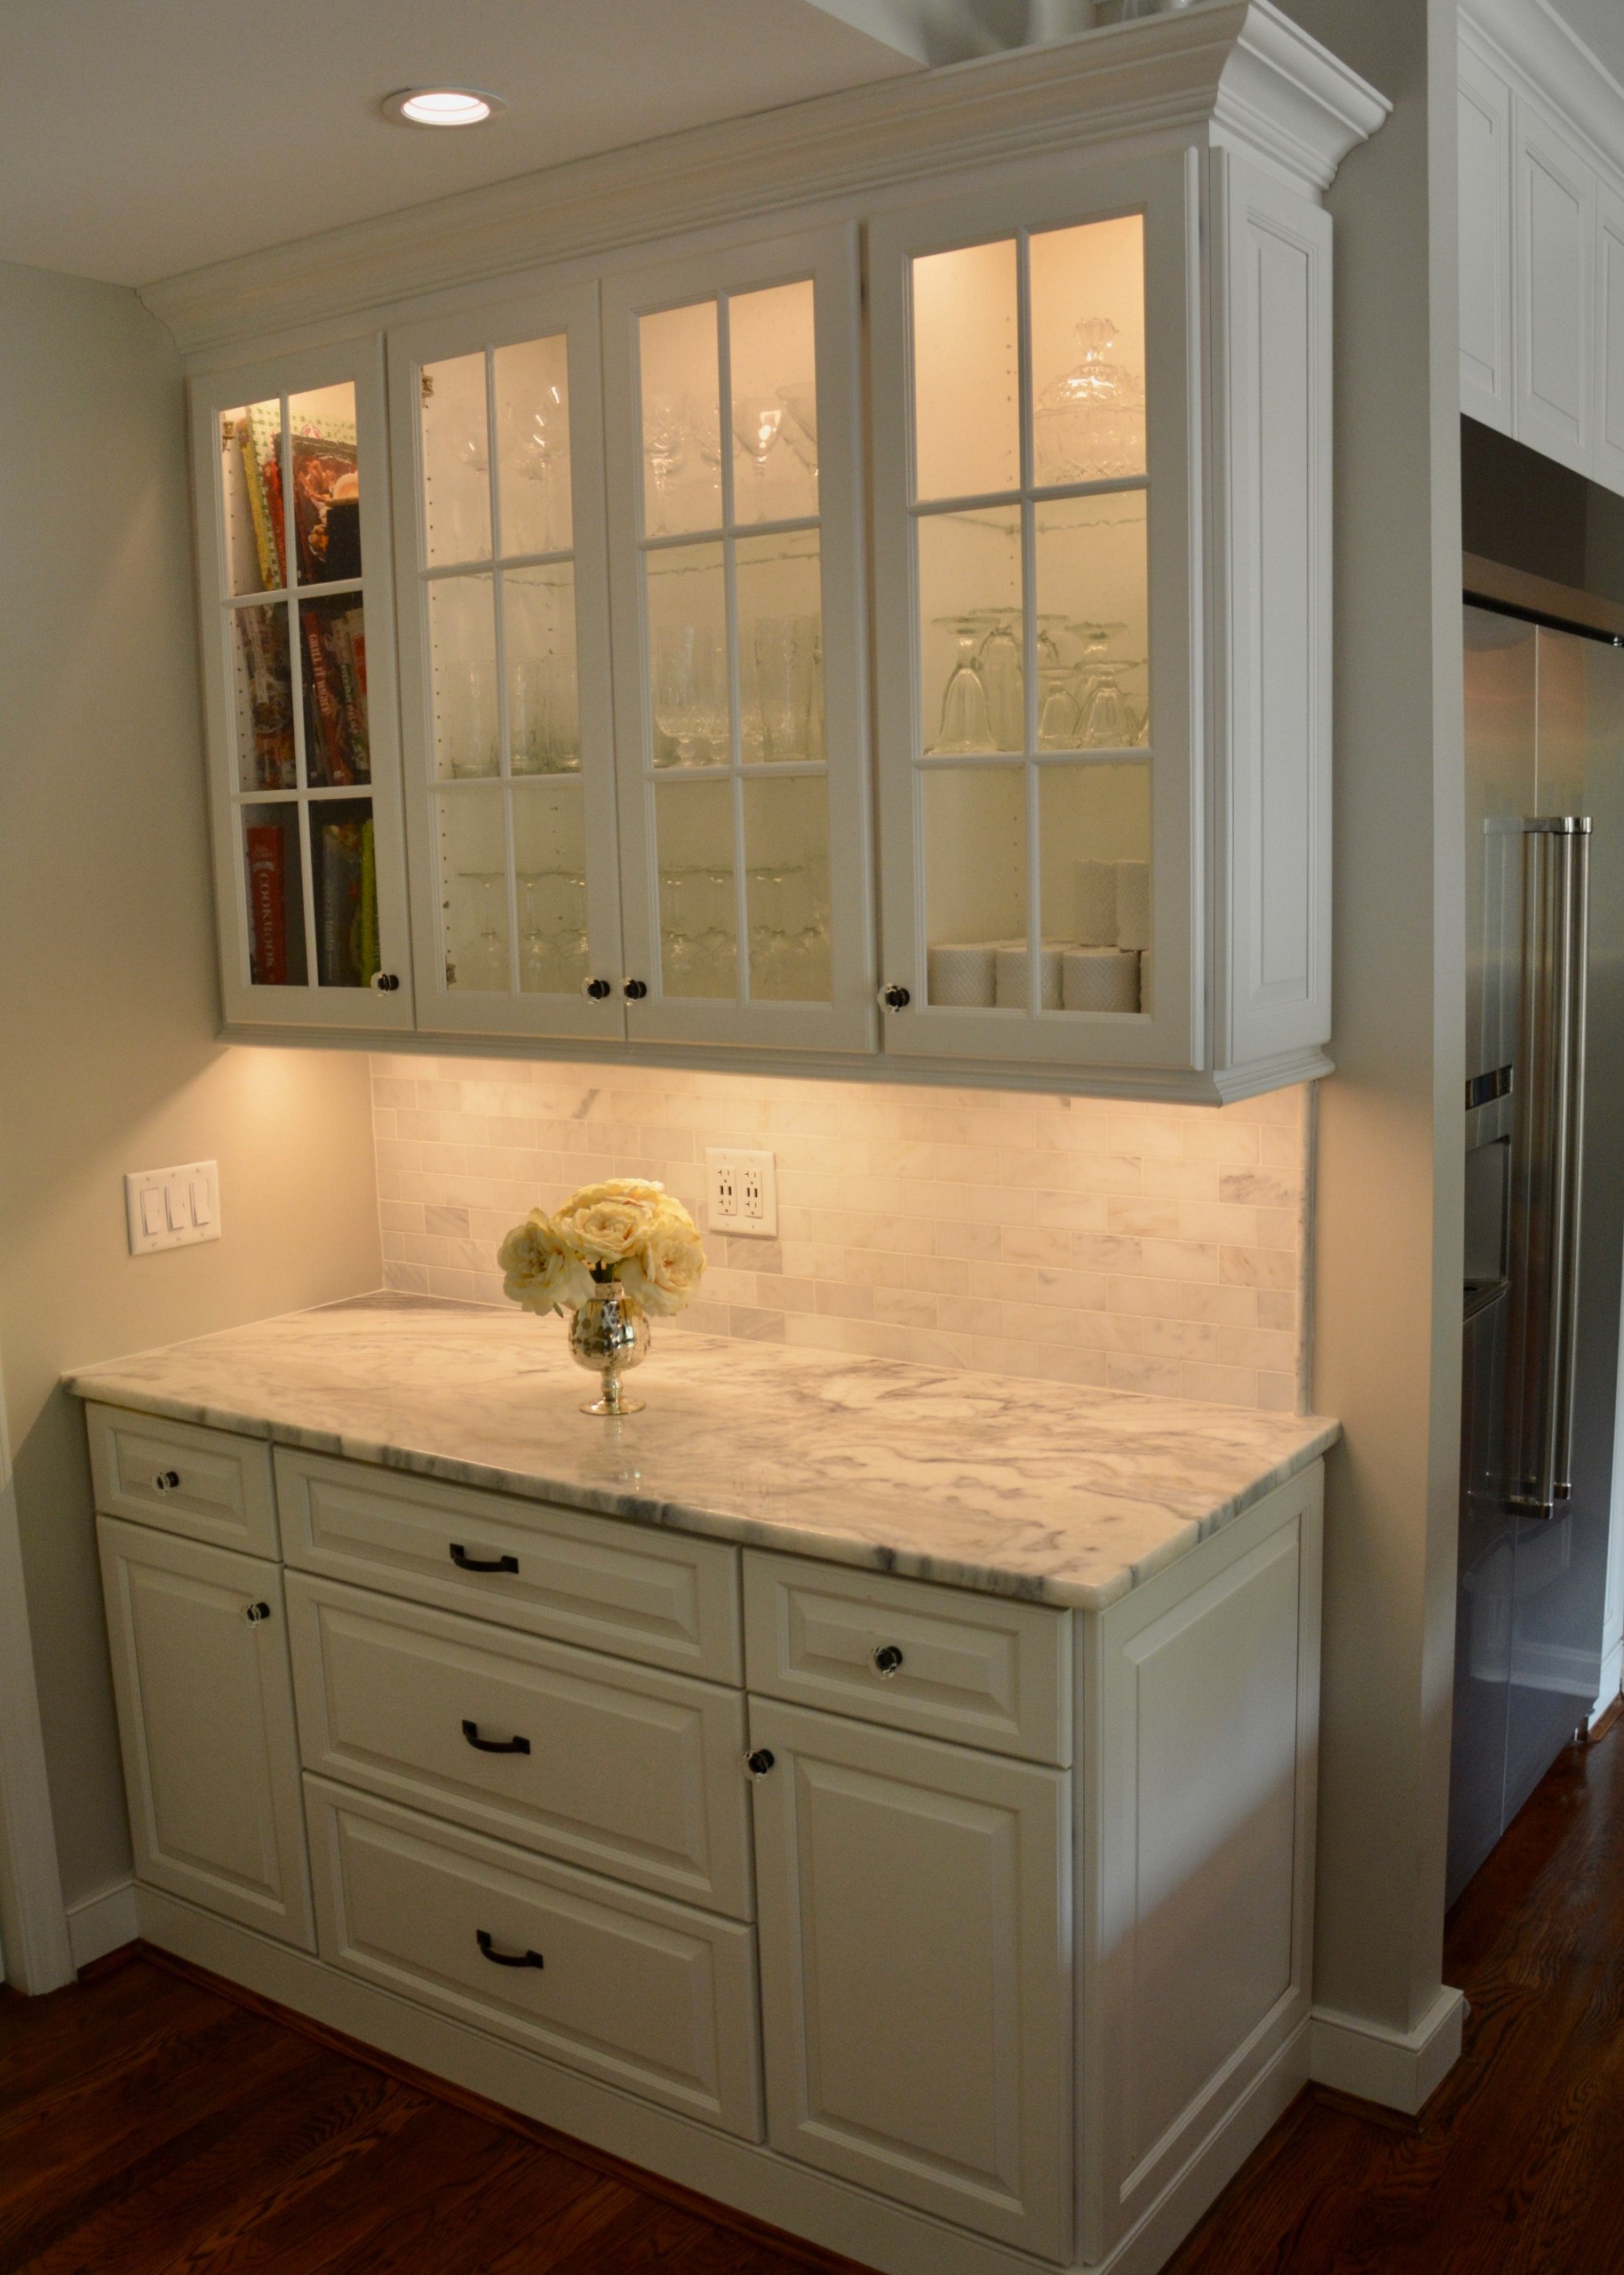 Wet bars/Butler Pantry